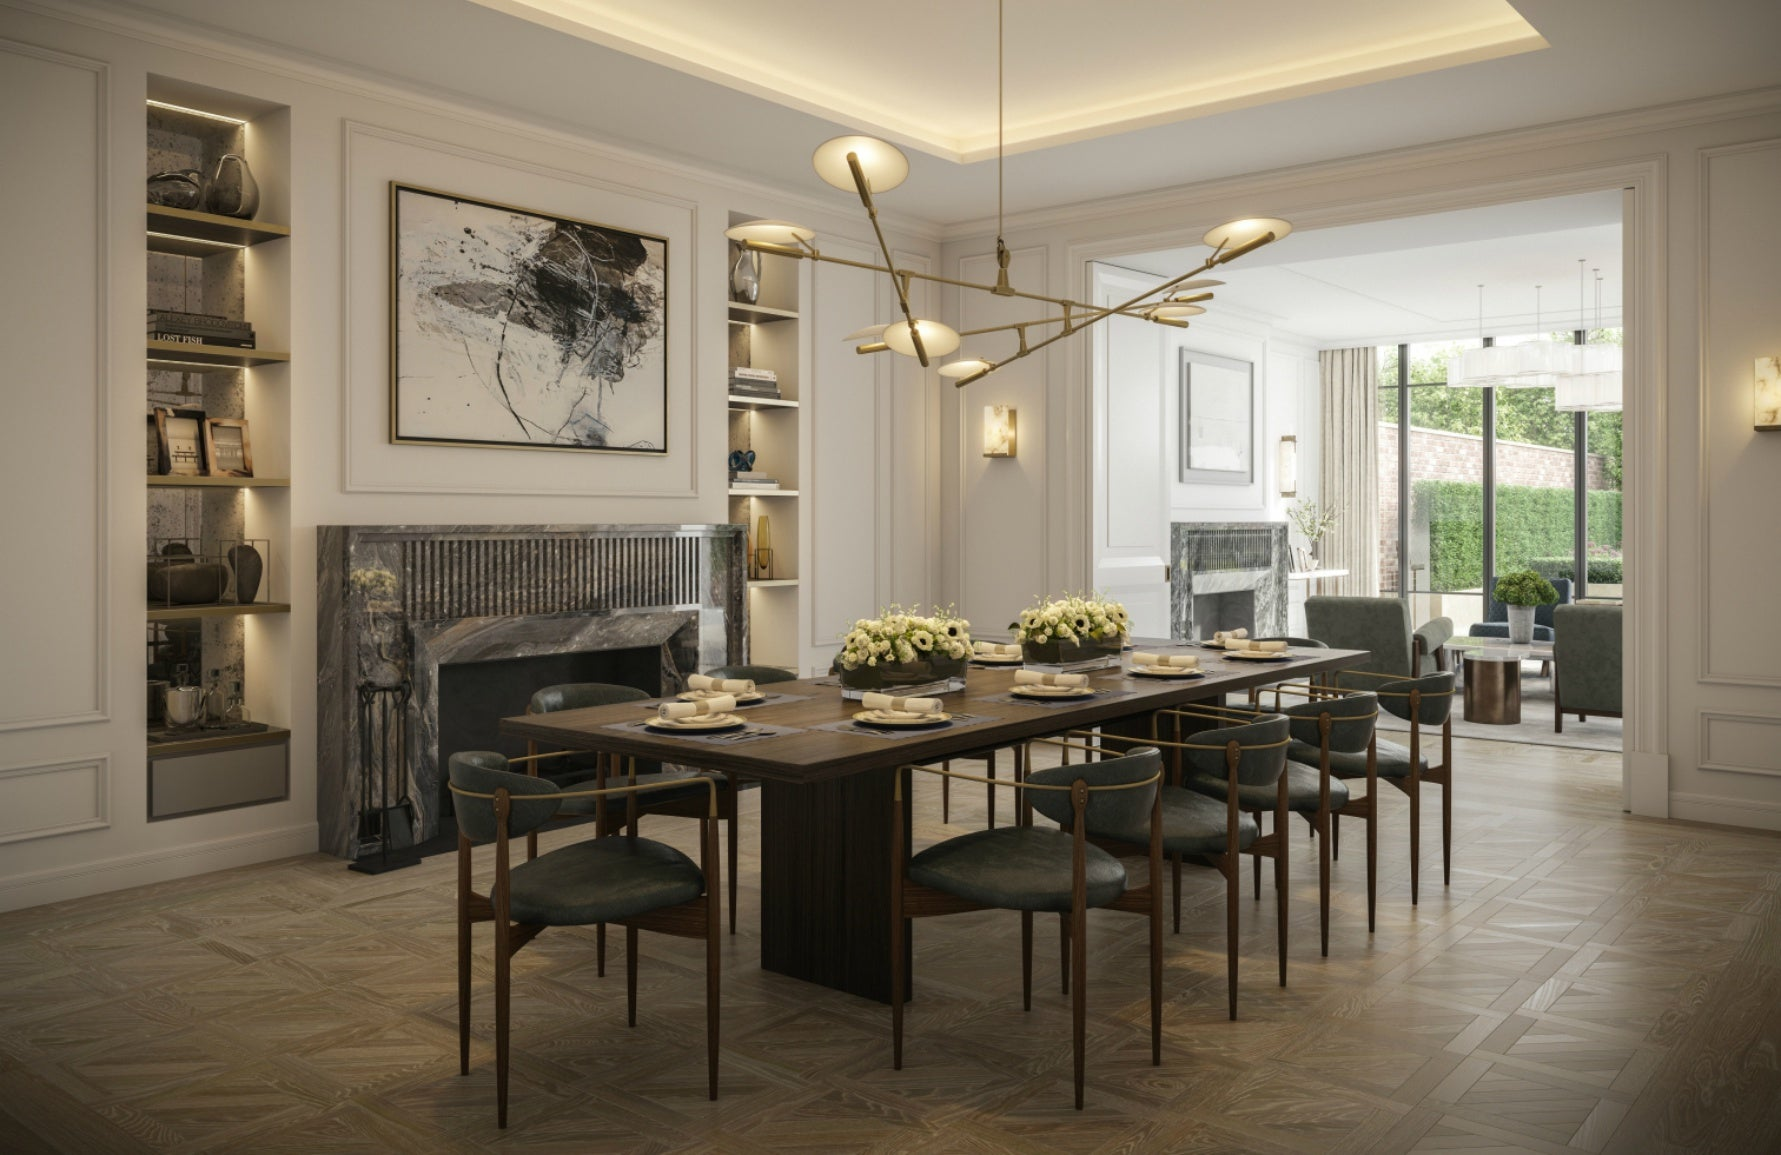 How To Light Your Home For Winter | Luxury Dining Room | Design by 1508 London | Read more in LuxDeco.com